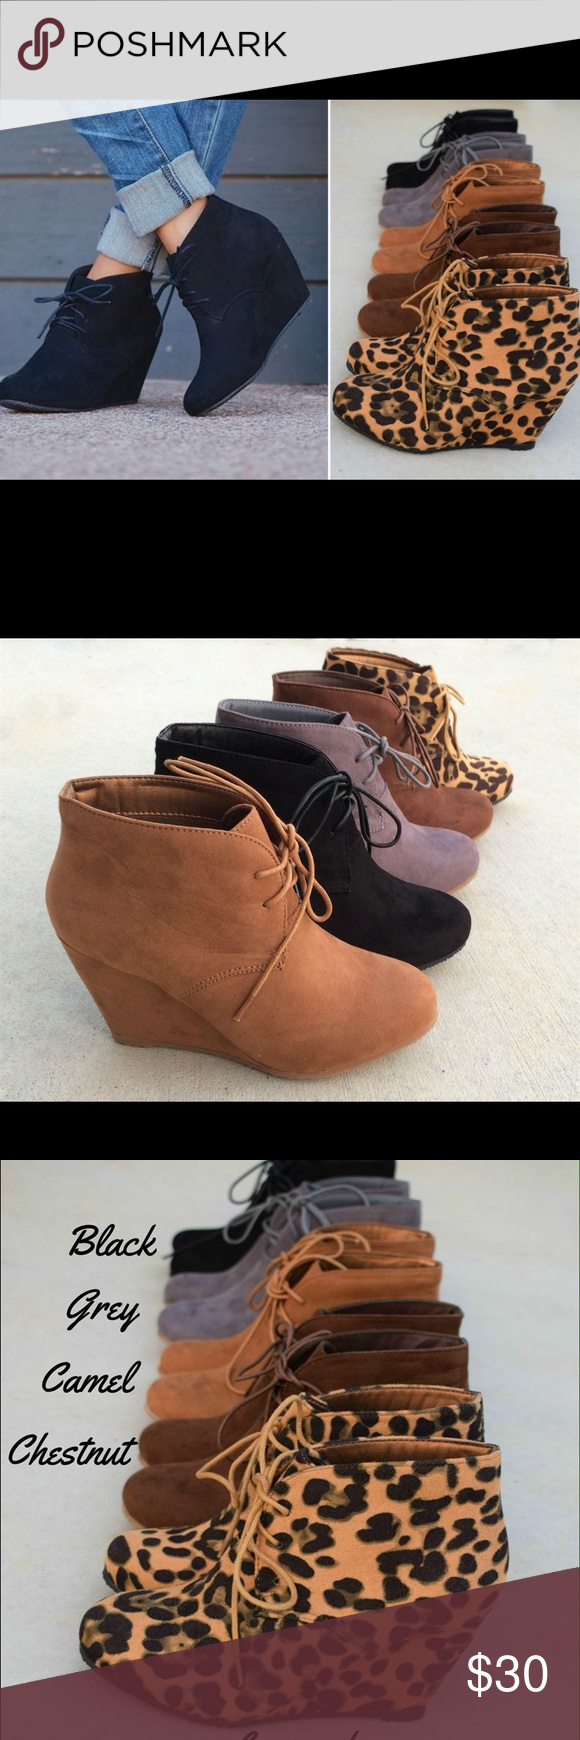 Ankle booties I have two pairs of these one in grey and camel. Both new and size 10. Shoes Ankle Boots & Booties